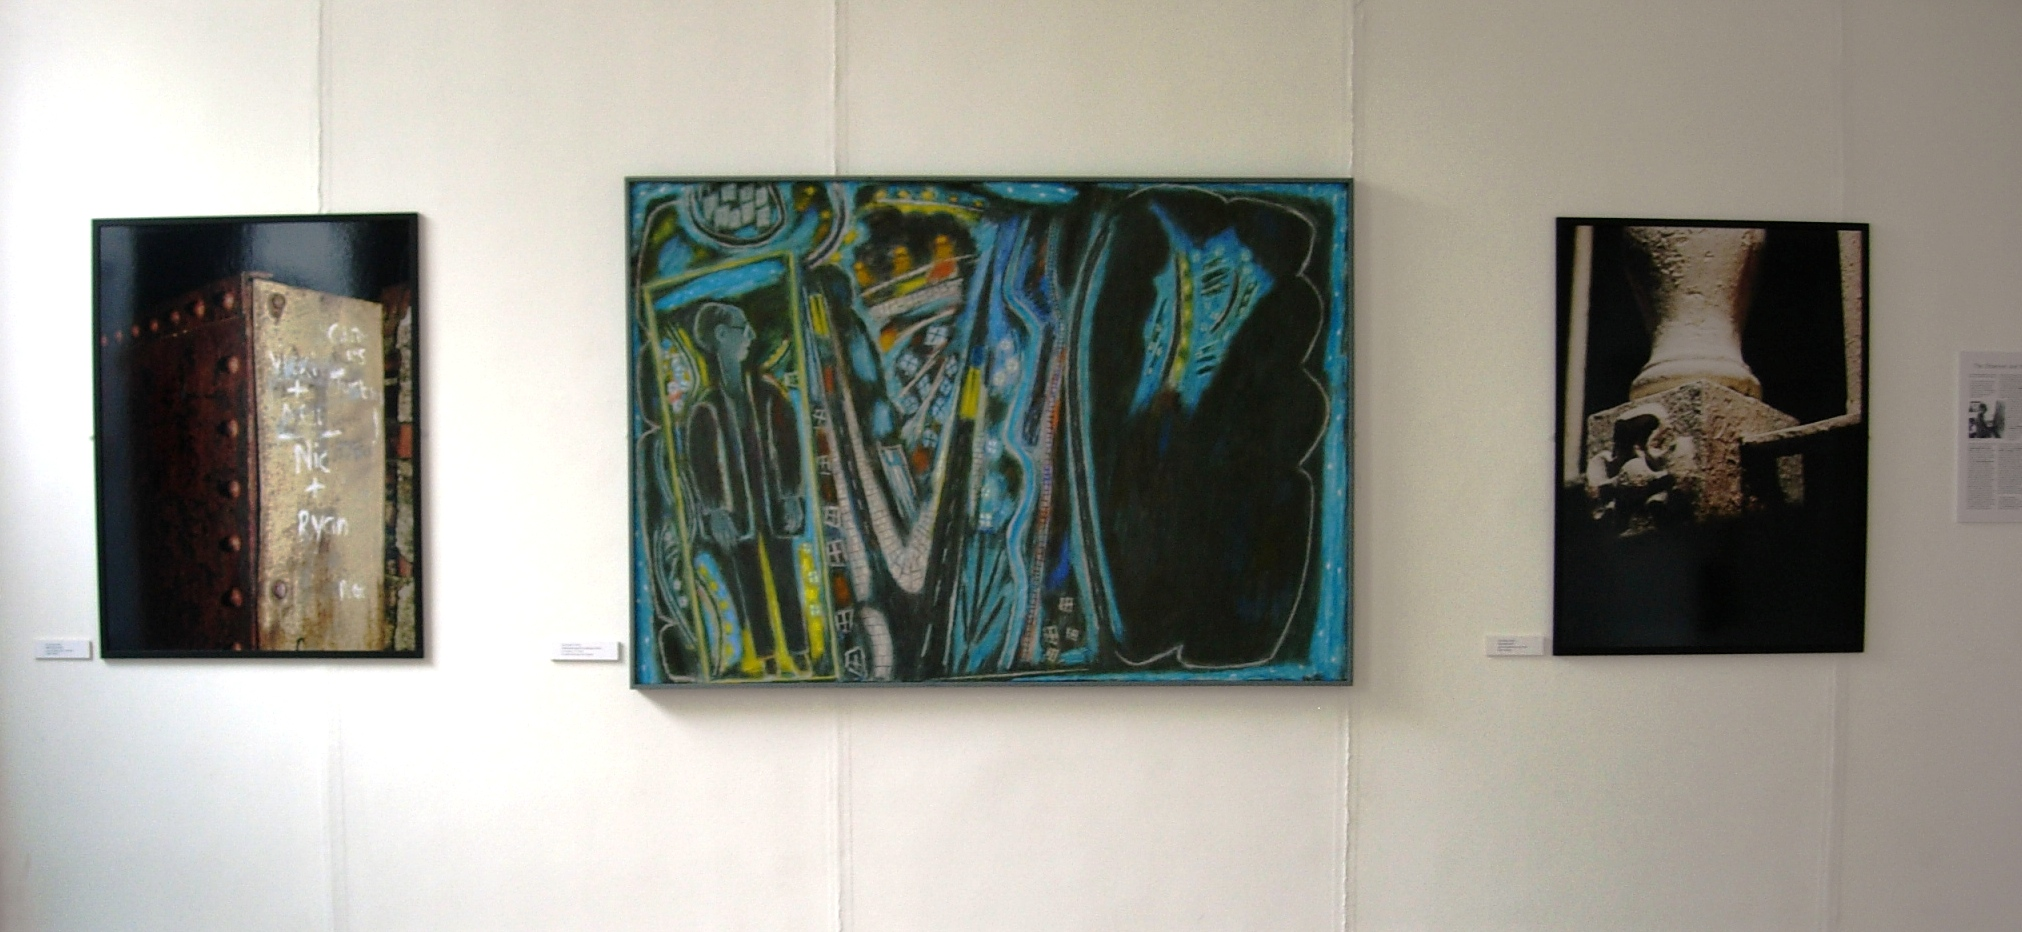 A late painting by Ernest Zobole flanked by photographs by Paul Cabuts, 2006